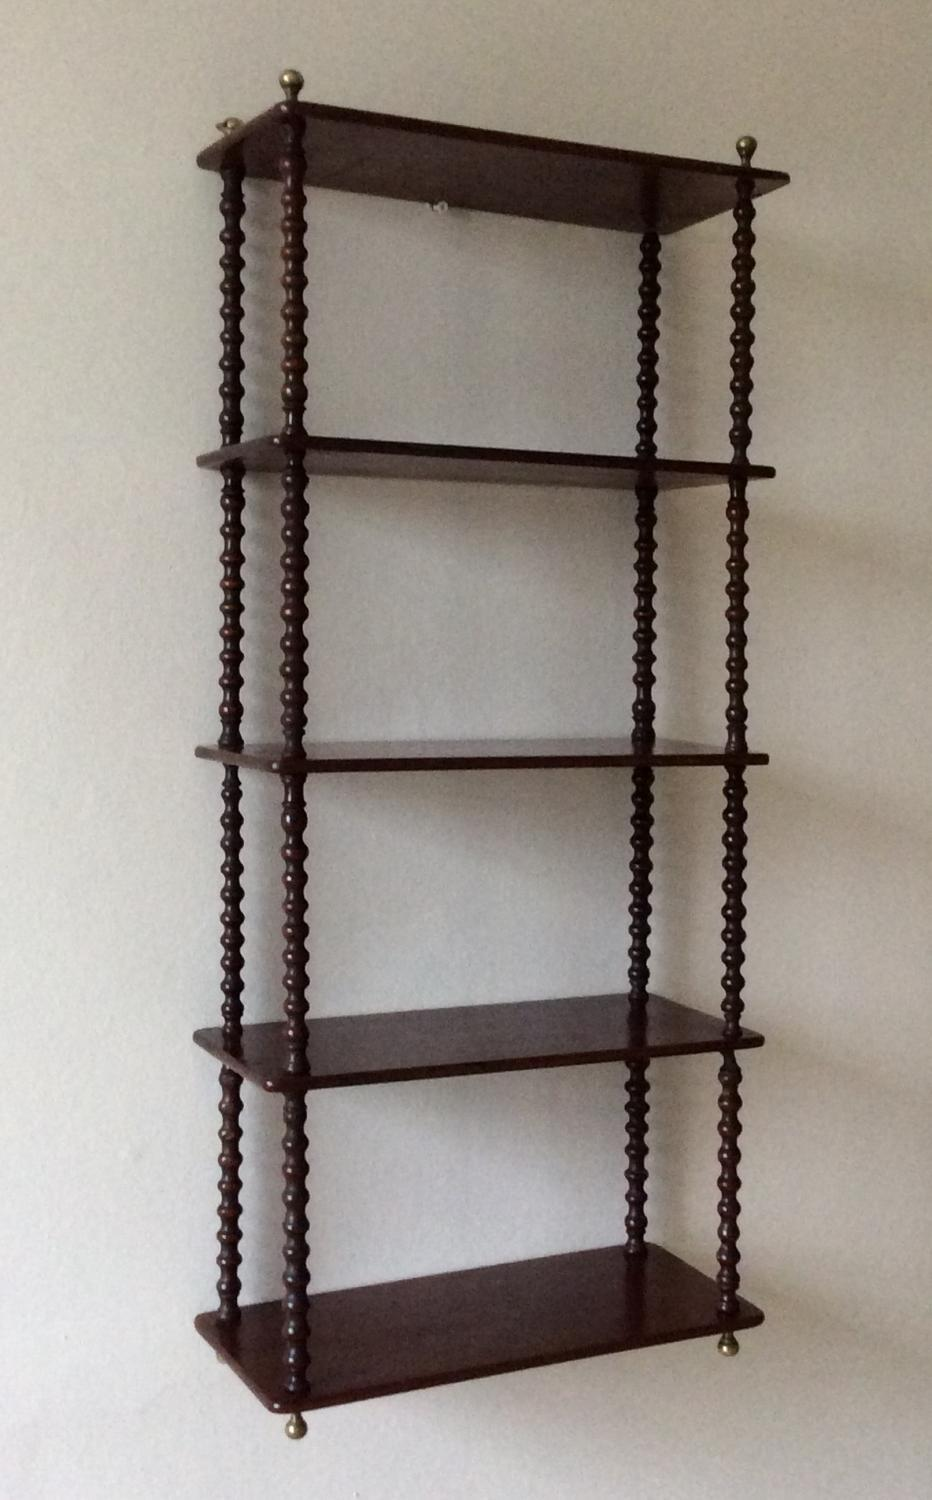 Mid 19th century Mahogany wall shelves